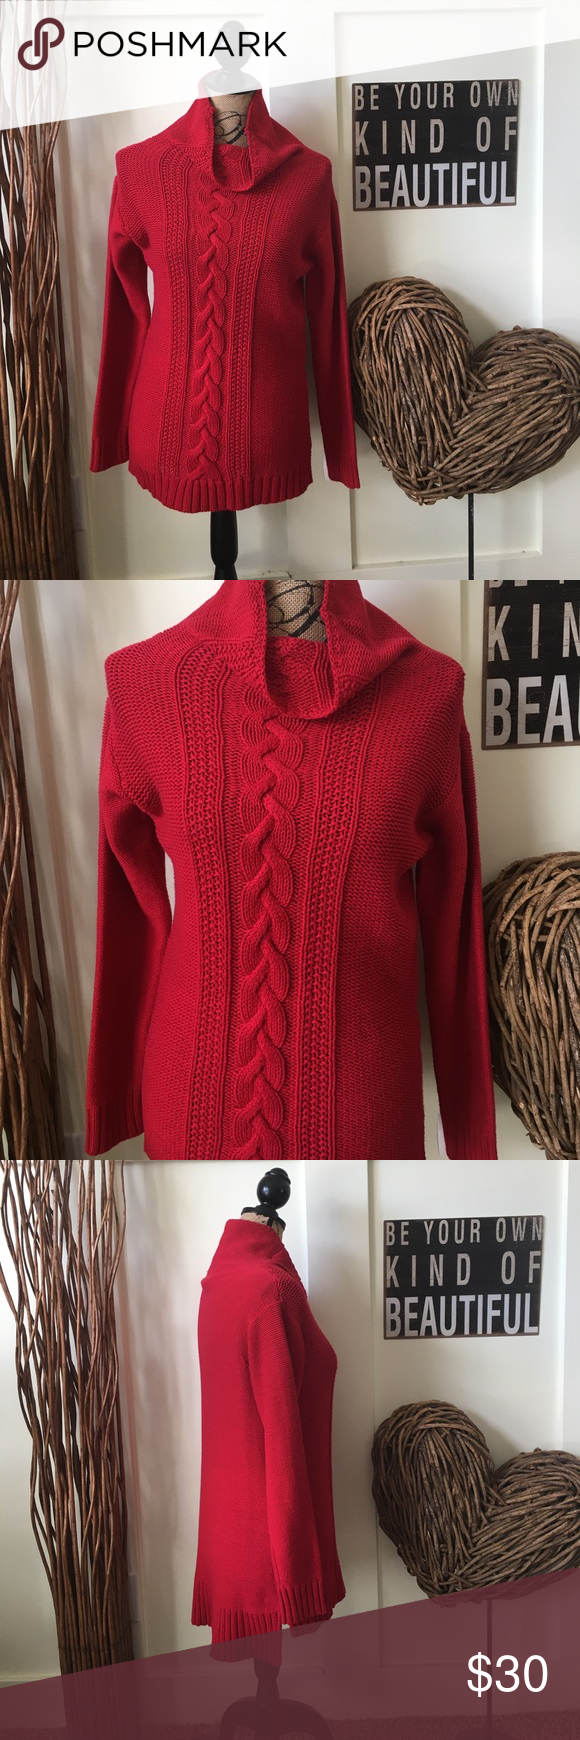 Chaps cherry red mock turtleneck sweater NWT